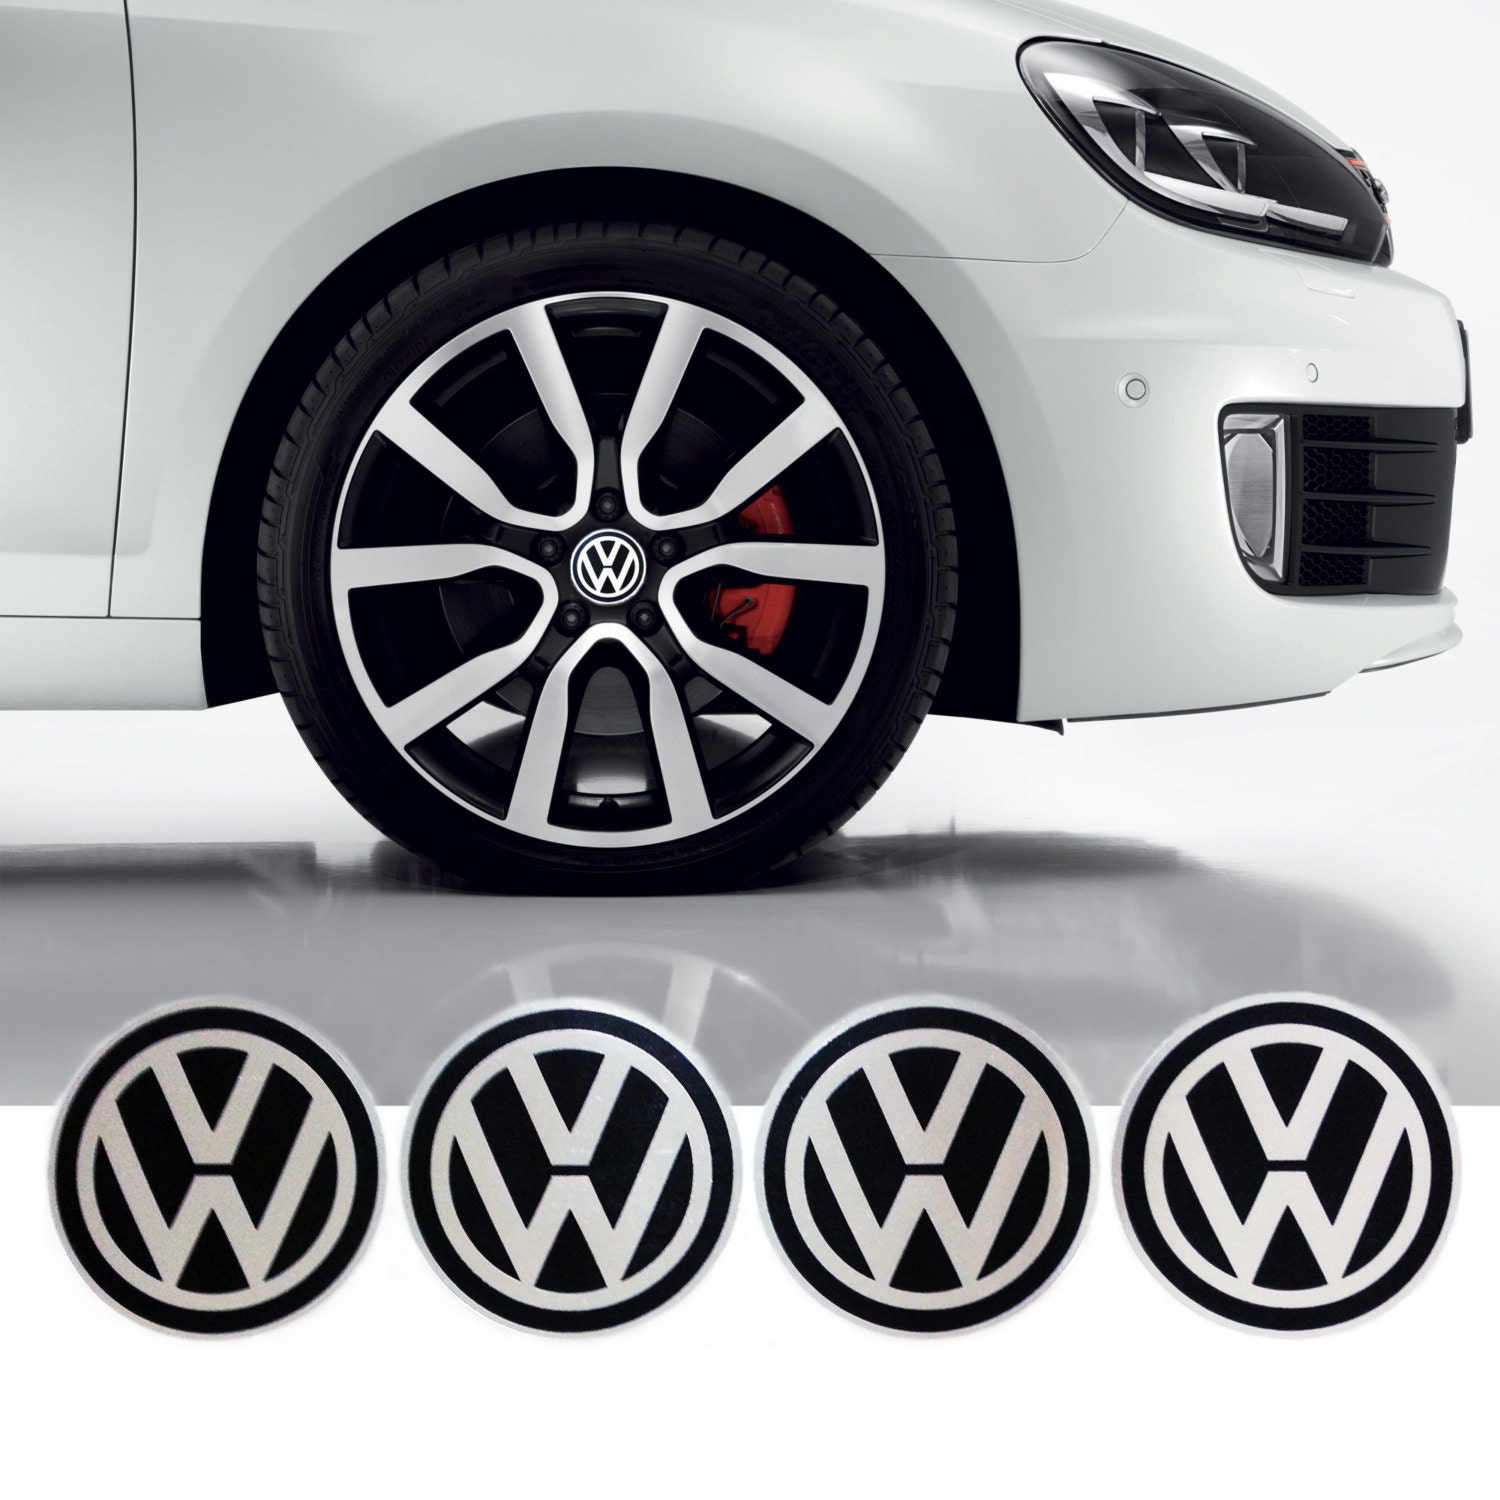 VW Volkswagen Wheel Center Caps Sticker Emblem by Peelandsticker